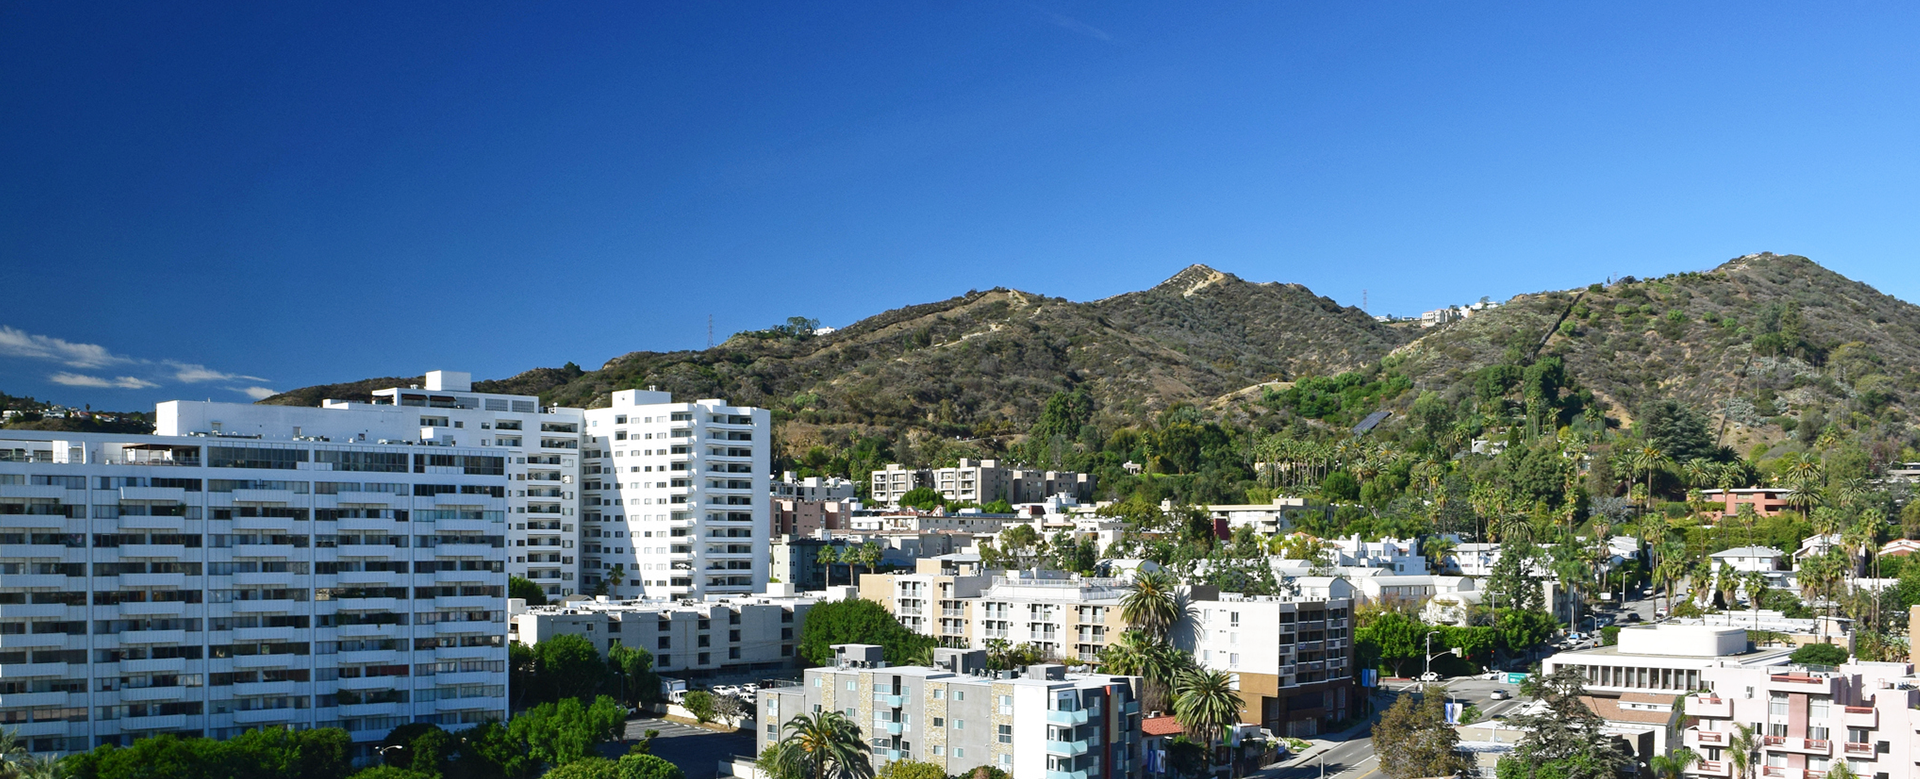 los angeles view of buildings and hills